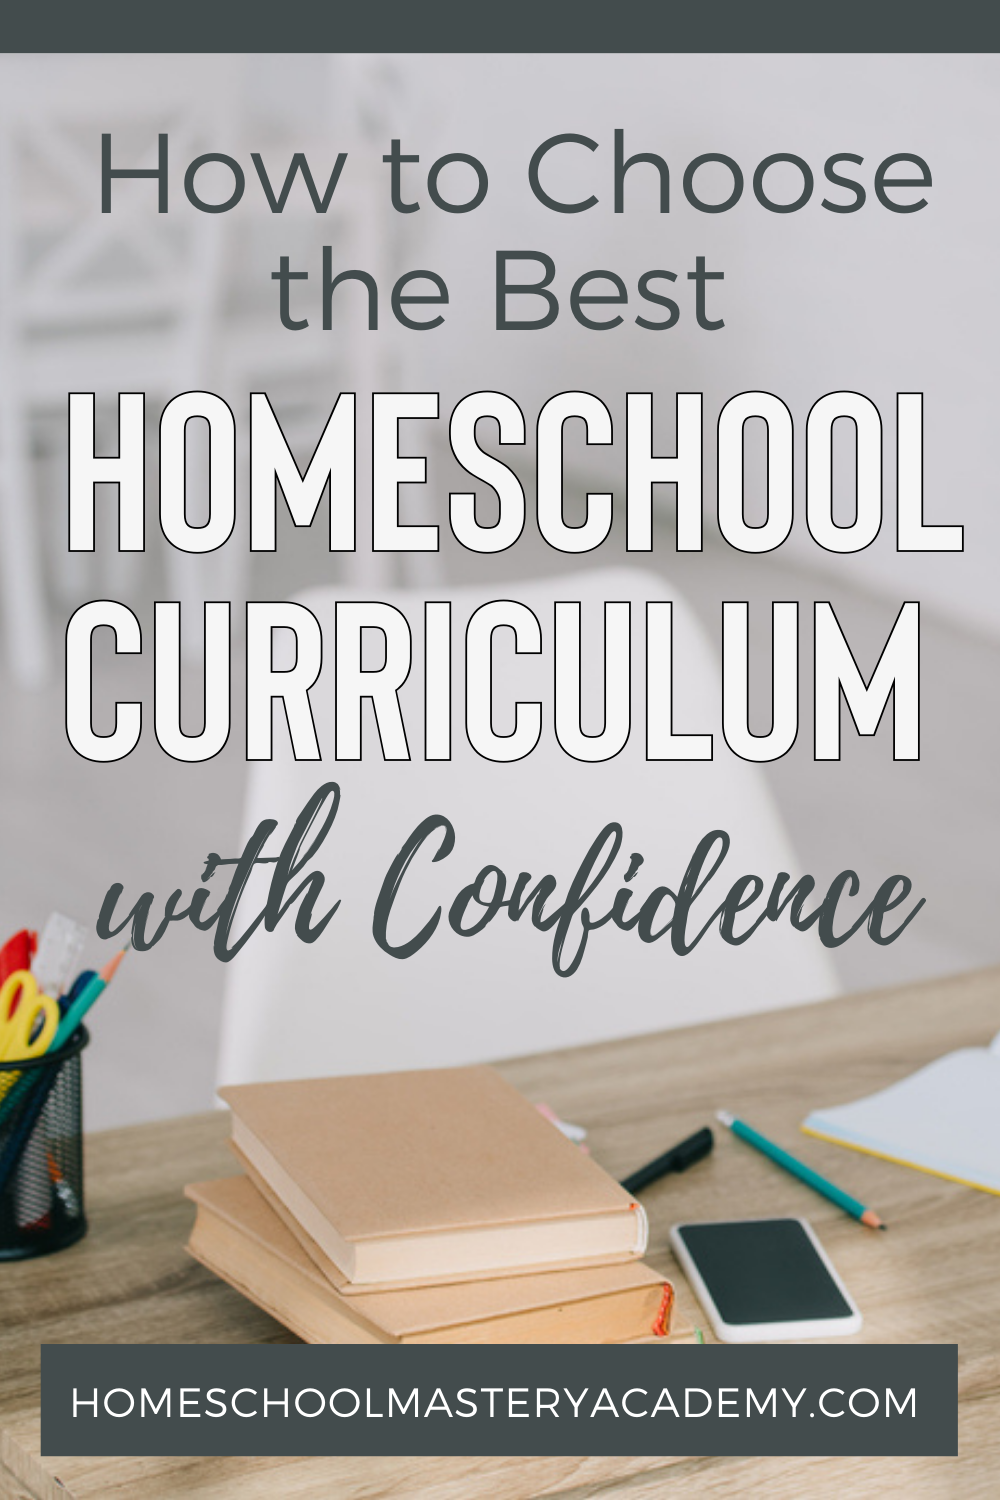 Here are the exact steps to choosing the best homeschool curriculum for your children. Everything you need to know to confidently choose curriculum. #homeschool #homeschooling #homeschoolcurriculum #homeschooltips